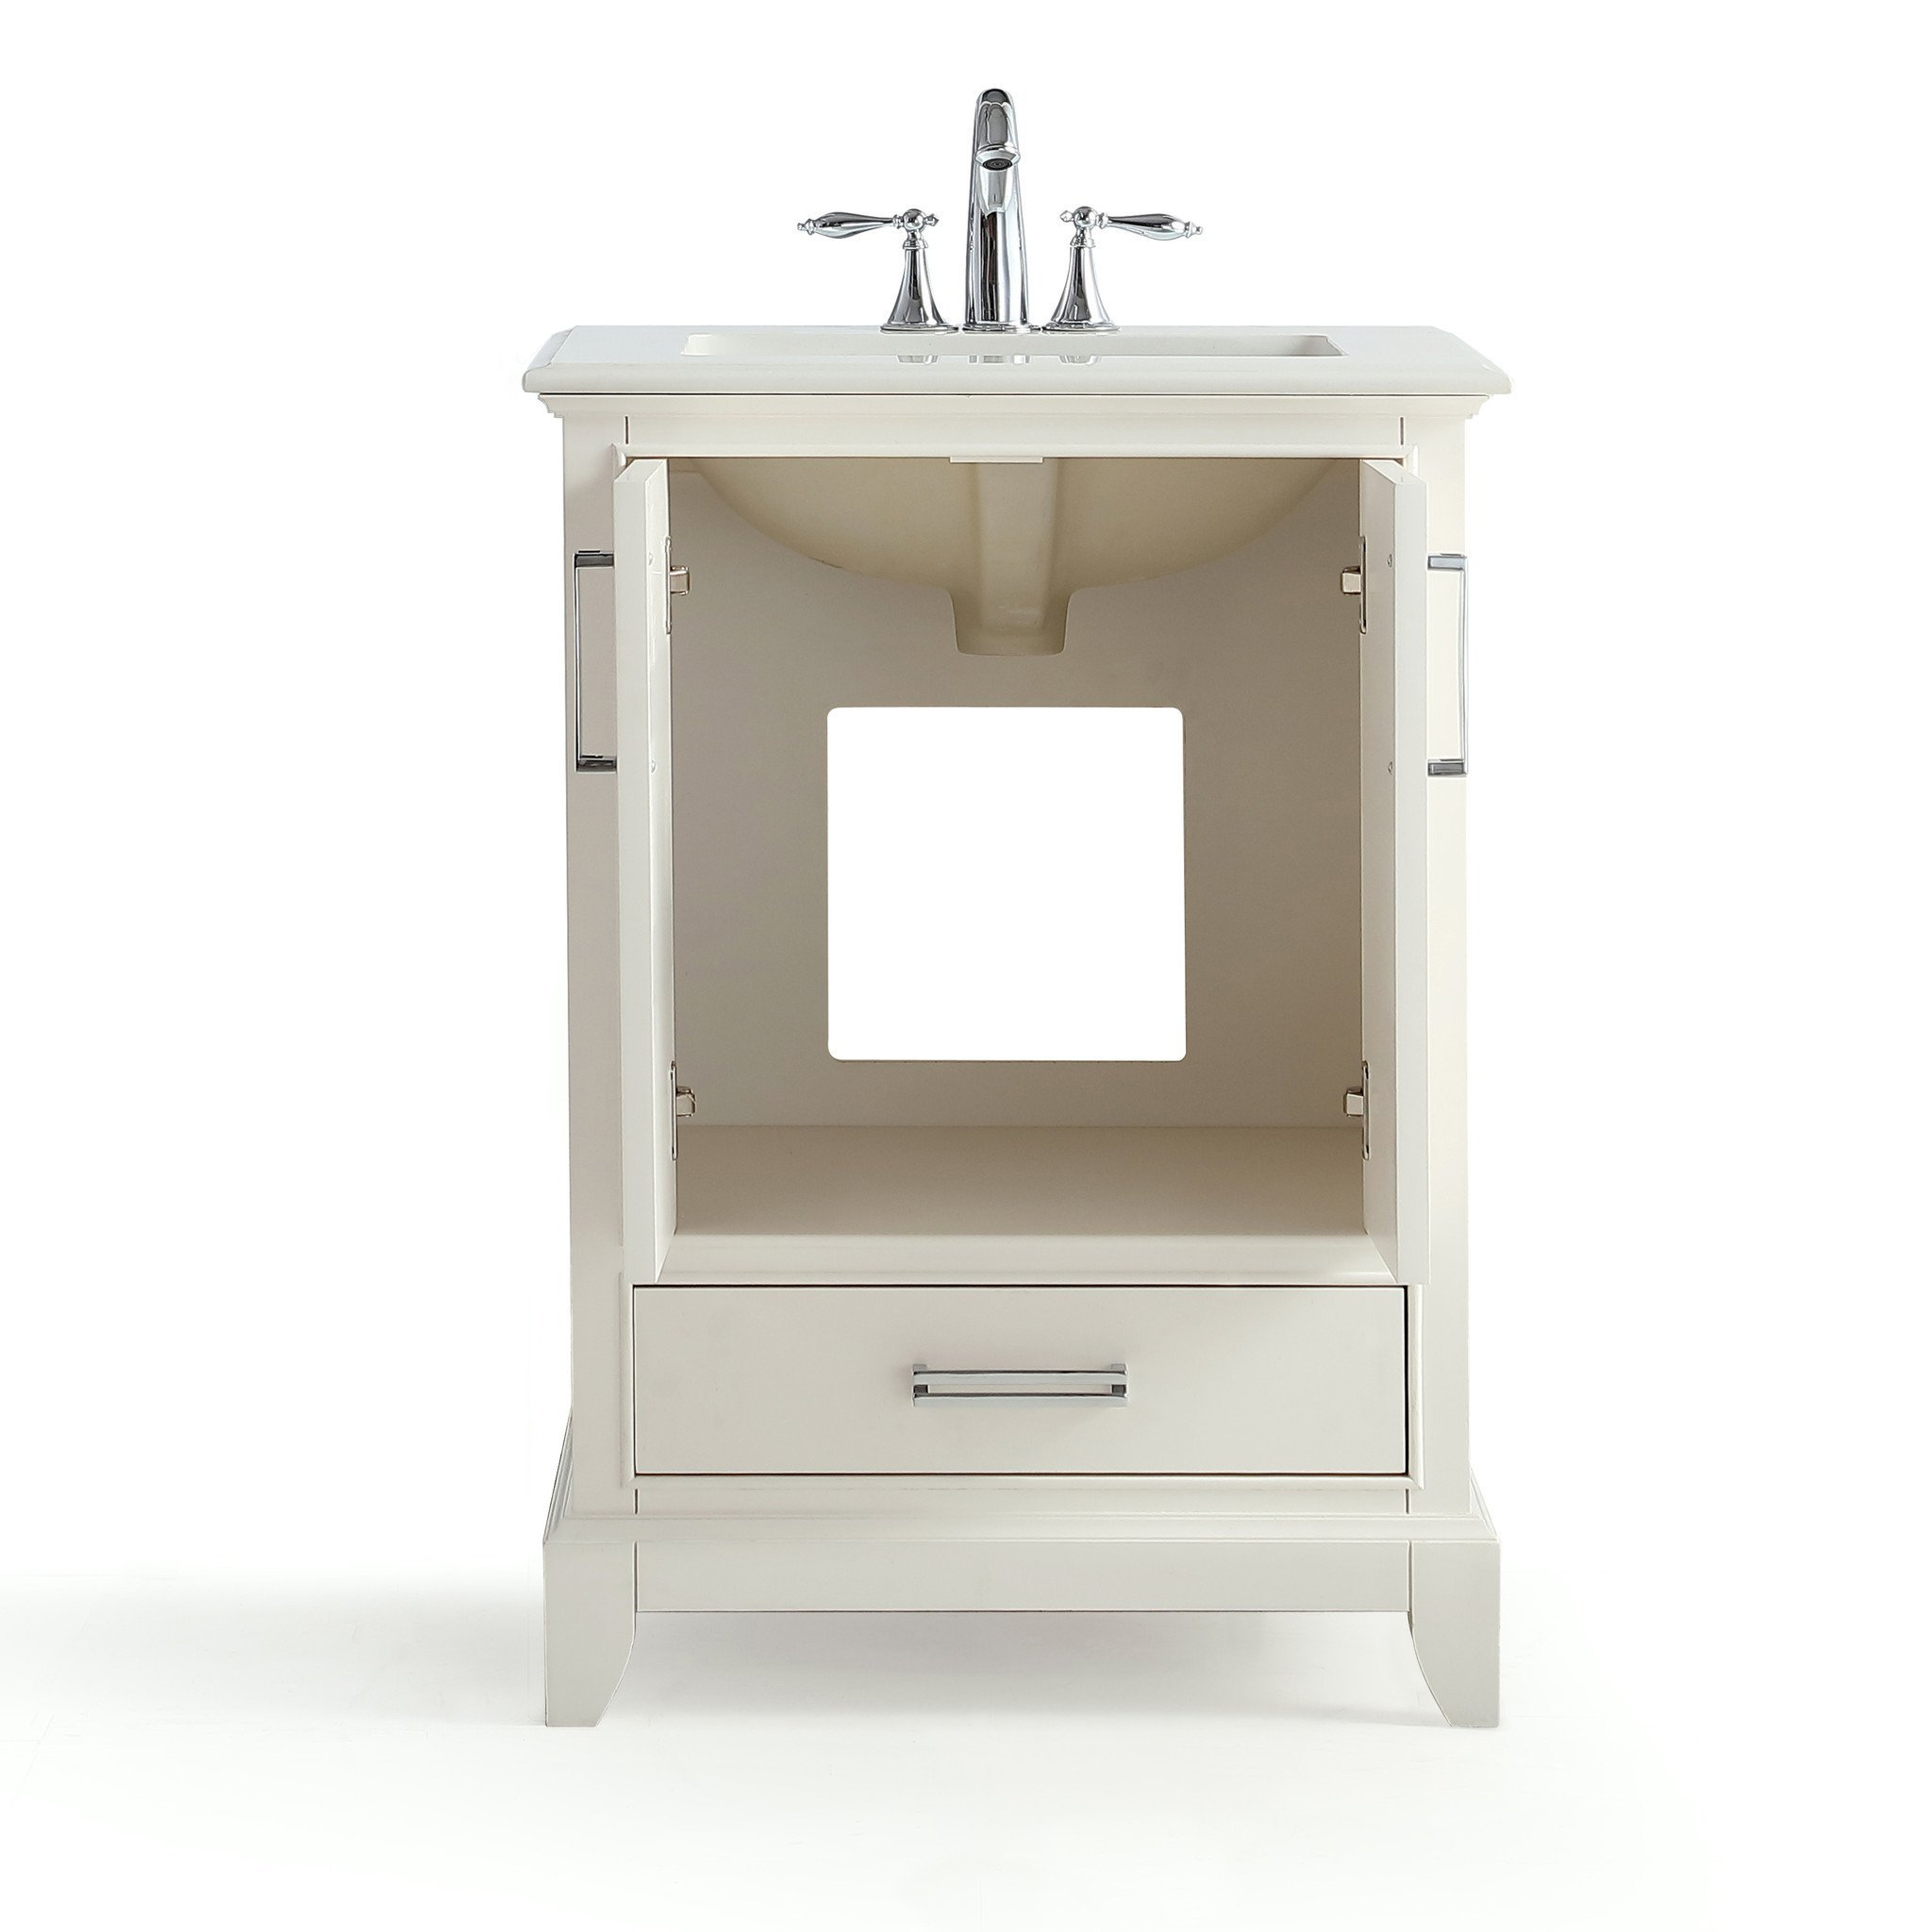 Update Your Bathroom With The Sophisticated Elise 24 Inch Vanity Sleek Pulls Adorn The Bottom Drawer And Two Doors Which Op Vanity Rectangular Sink Marble Top [ 2048 x 2048 Pixel ]